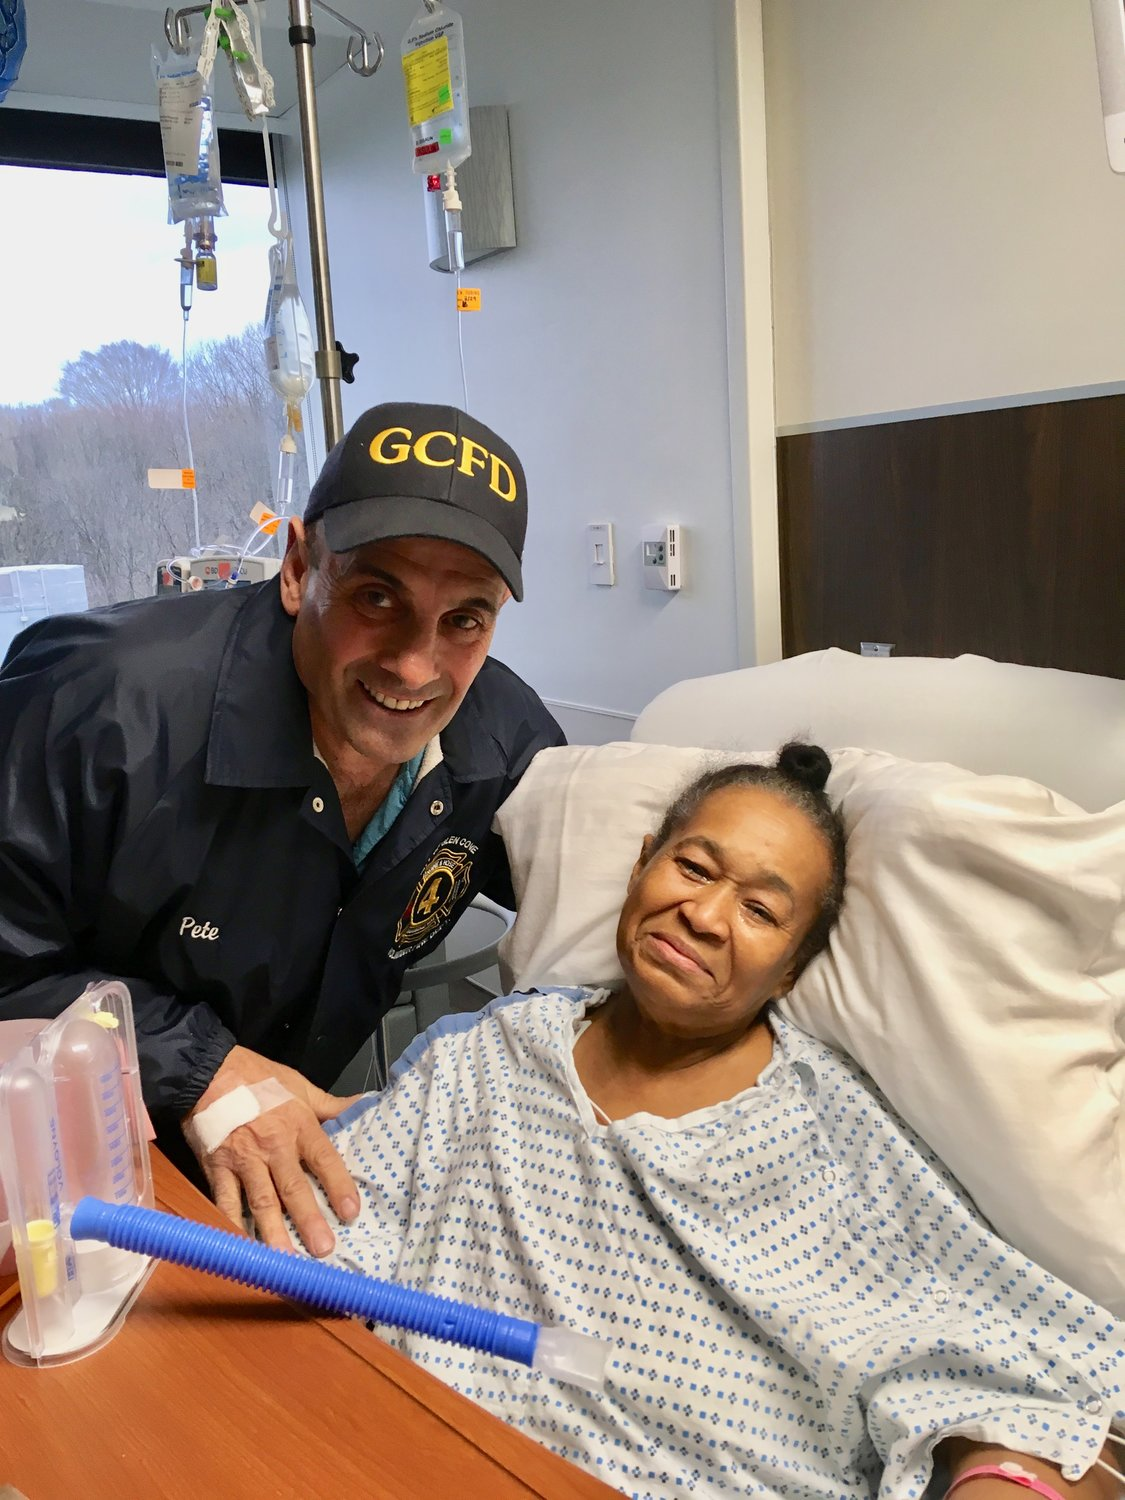 Glen Cove firefighter Pete Prudente donated a kidney to Carmen Sanchez, whom he didn't know, and saved her life.